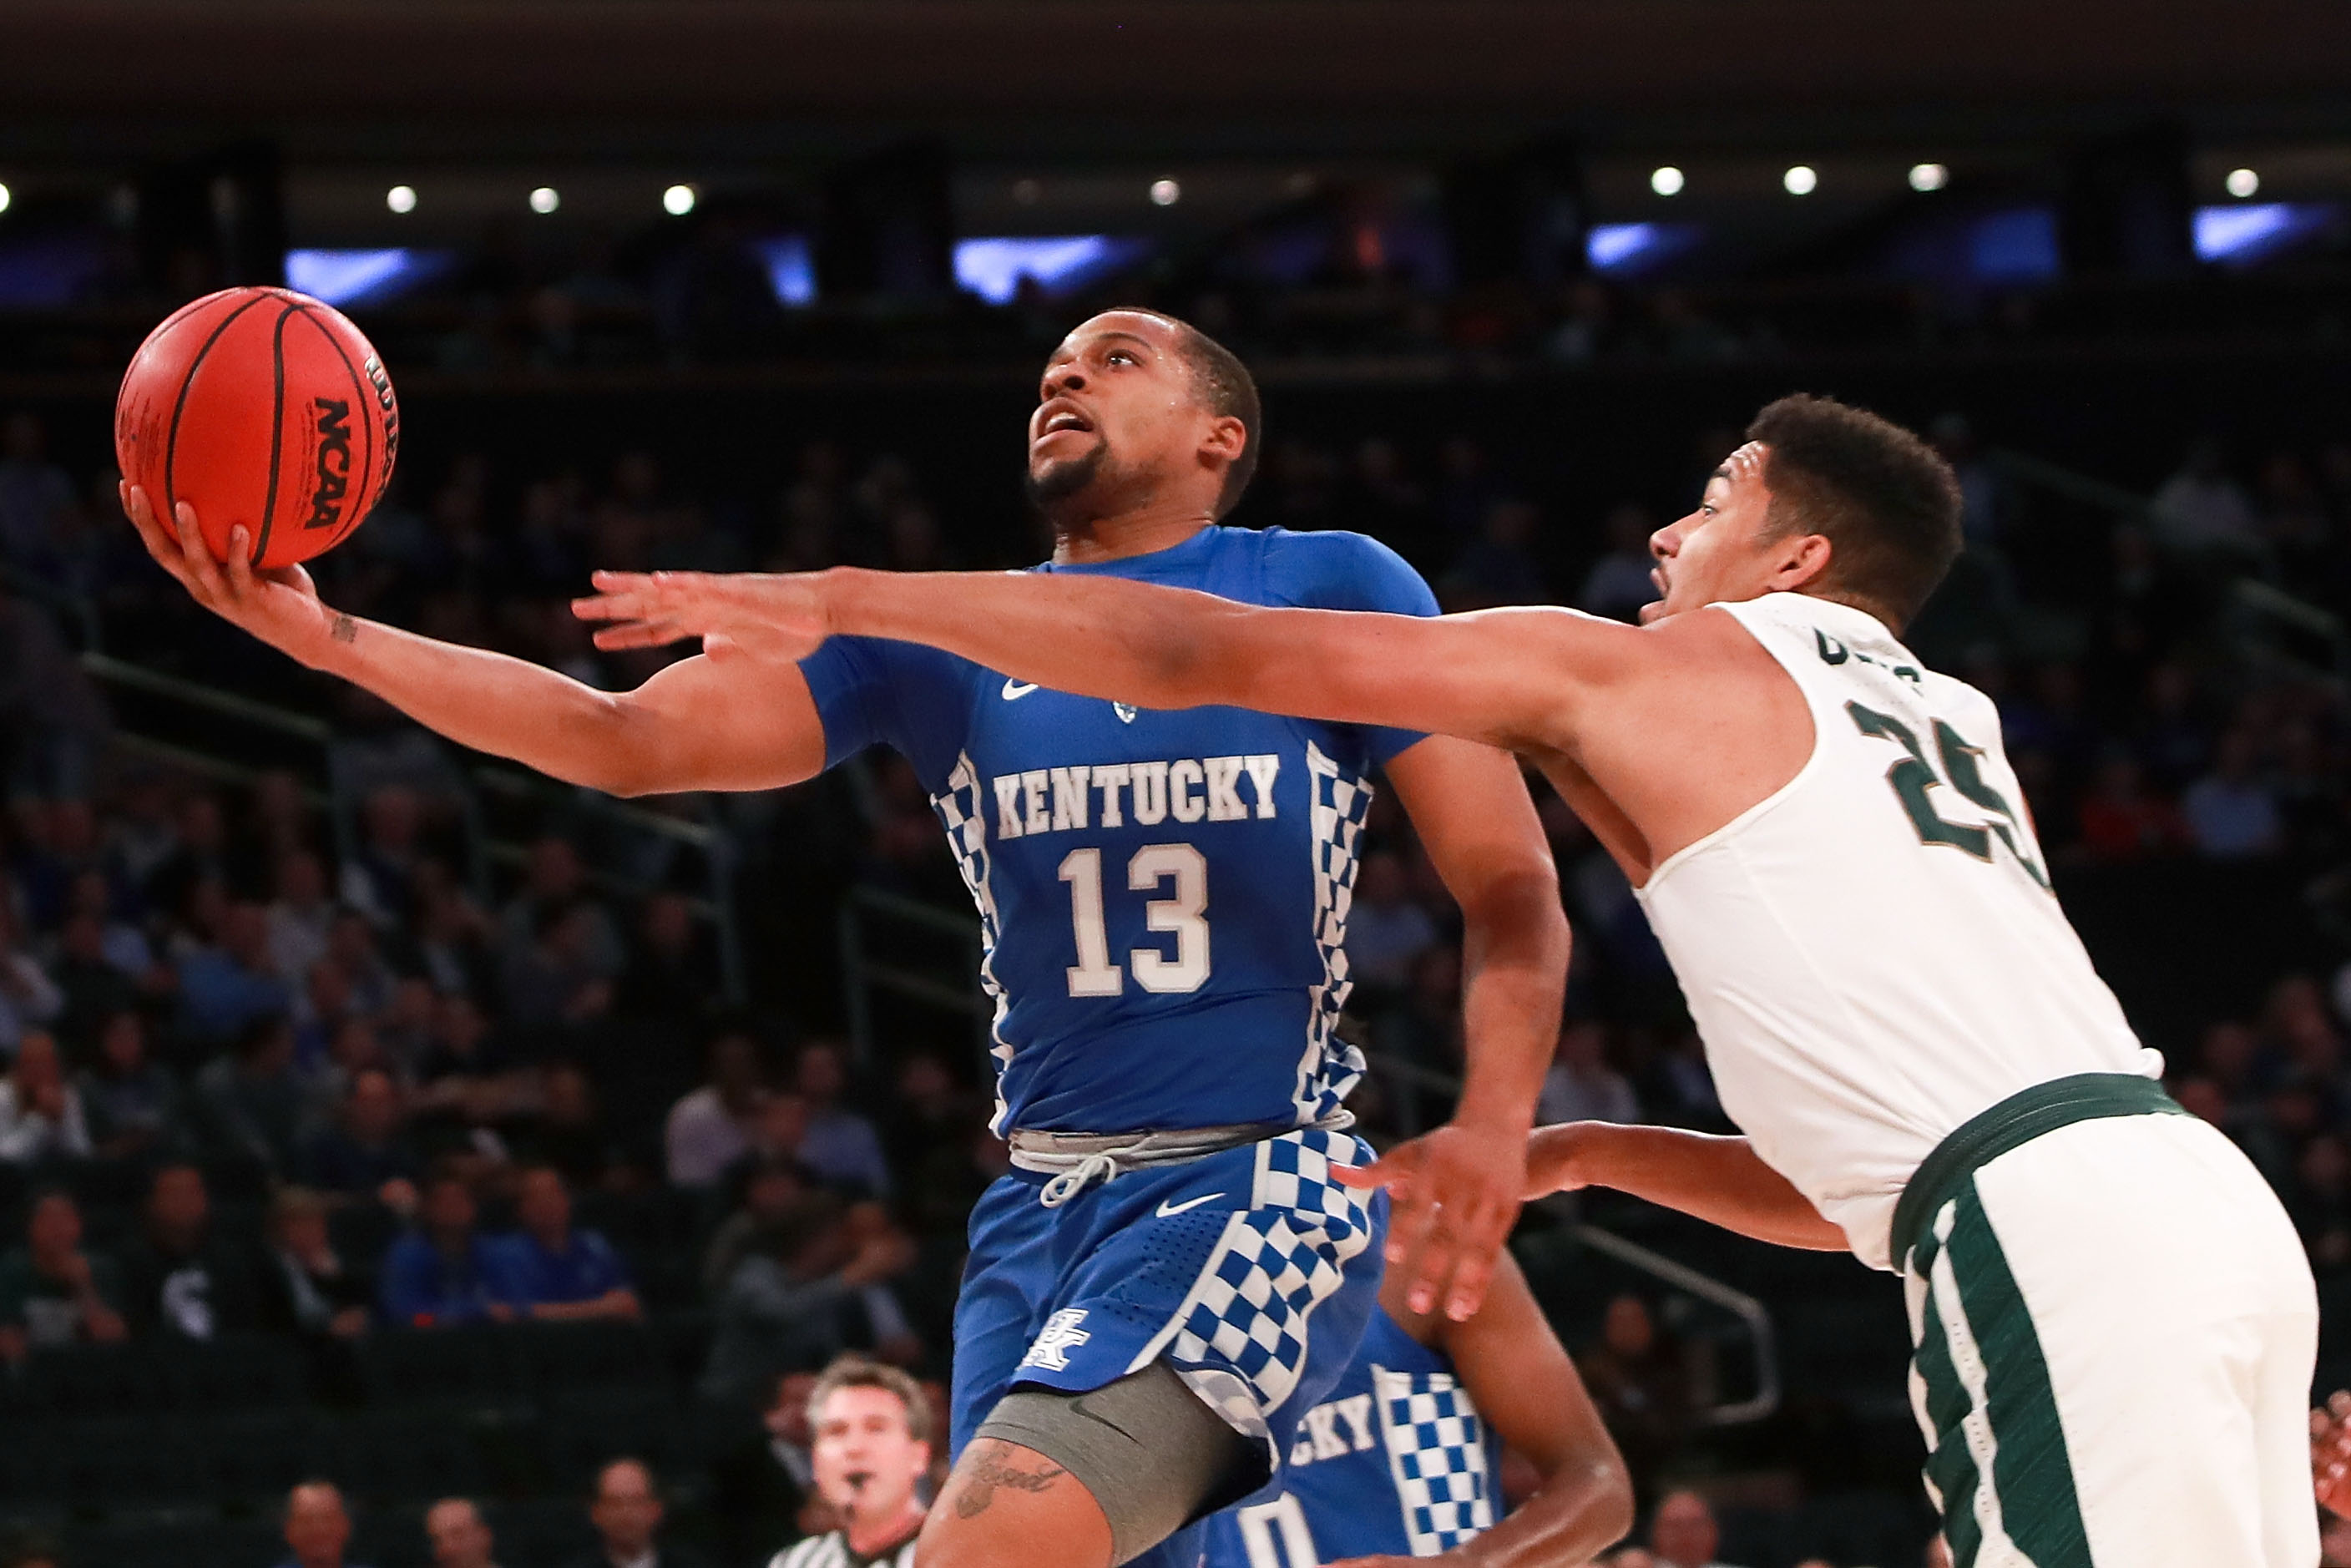 NEW YORK, NY - NOVEMBER 15: Isaiah Briscoe #13 of the Kentucky Wildcats puts up a shot against Kenny Goins #25 of the Michigan State Spartans in the first half during the State Farm Champions Classic at Madison Square Garden on November 15, 2016 in New York City. (Photo by Michael Reaves/Getty Images)